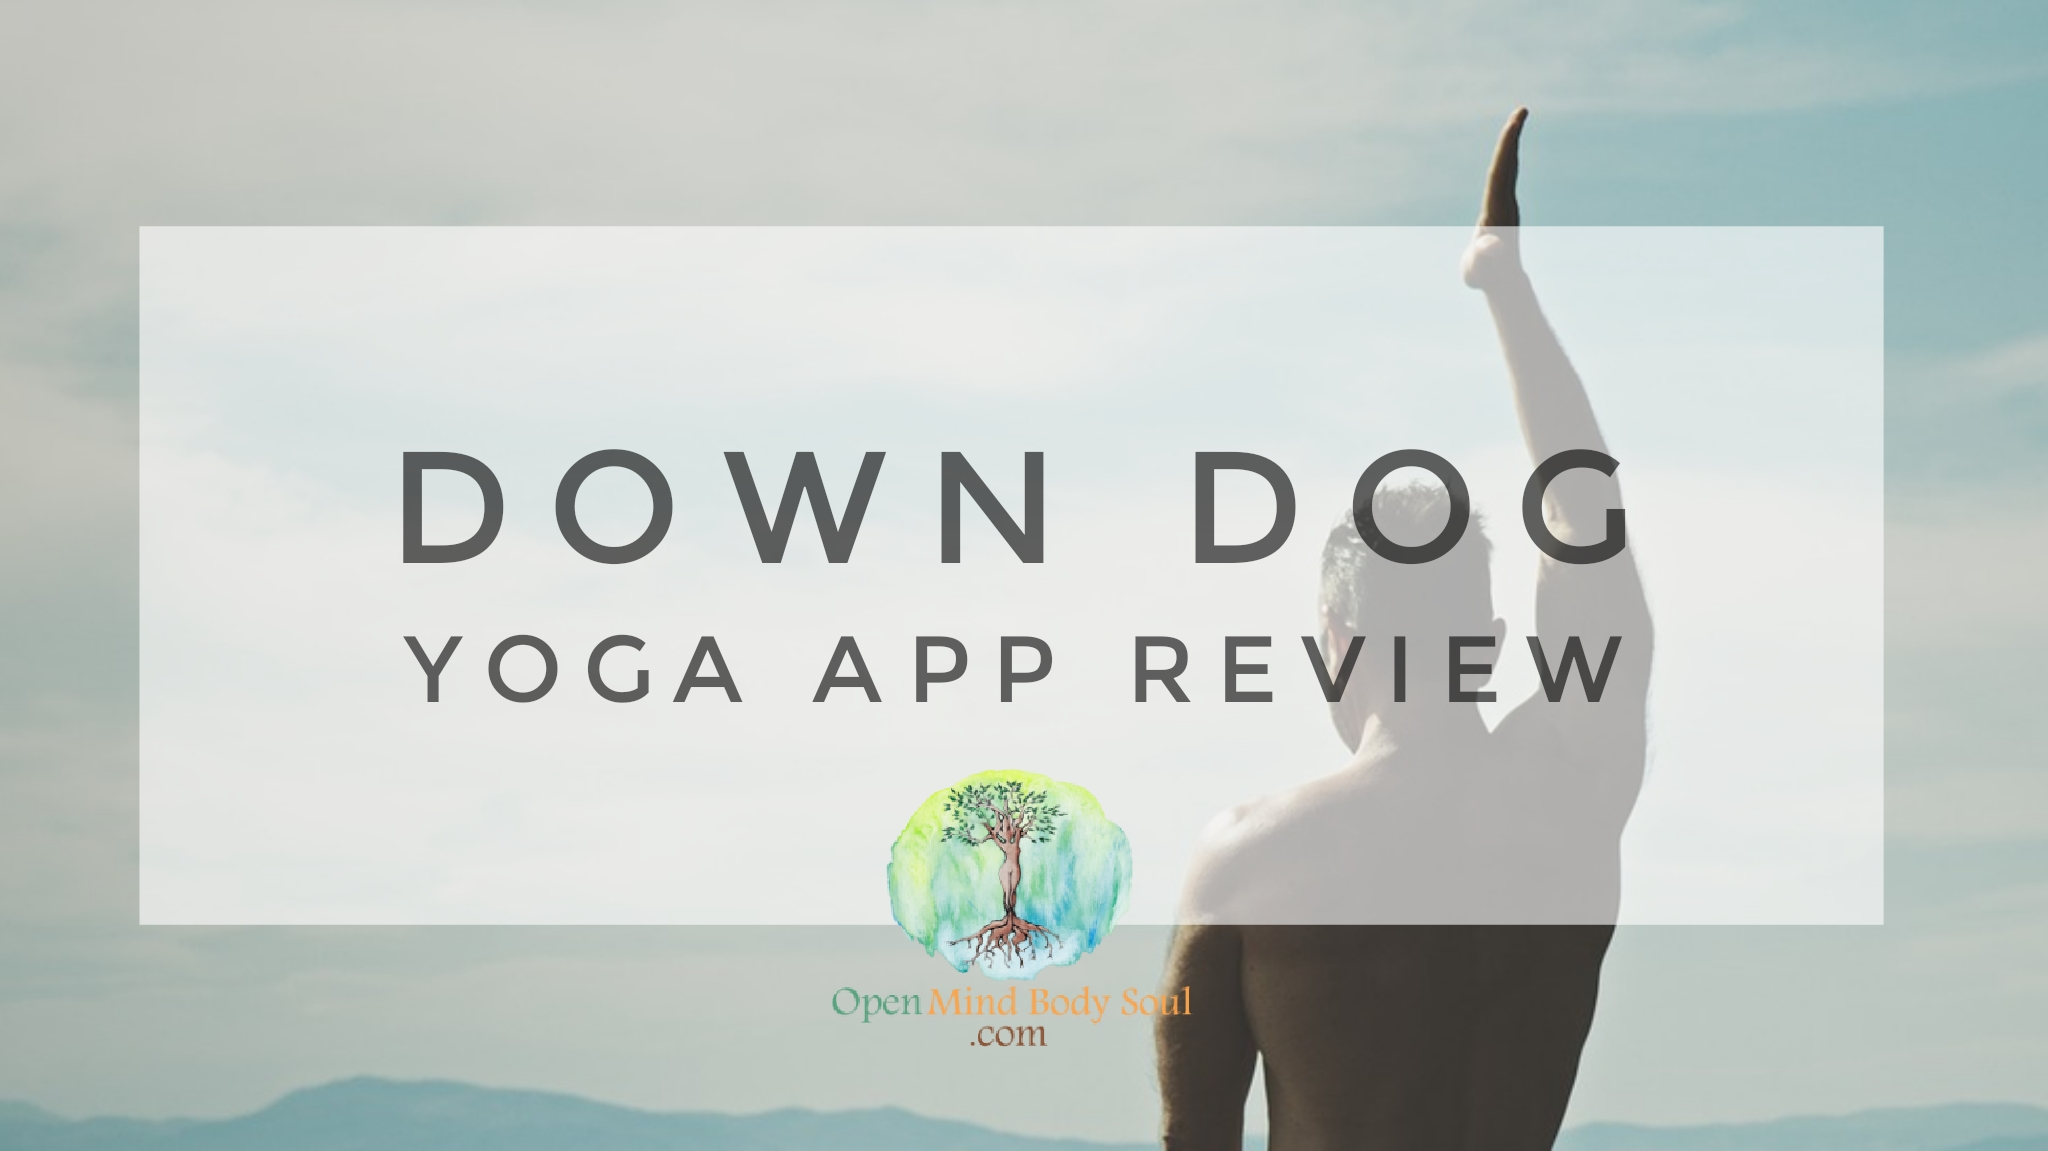 7 reasons why Down Dog is the Best Yoga App - Open Mind Body